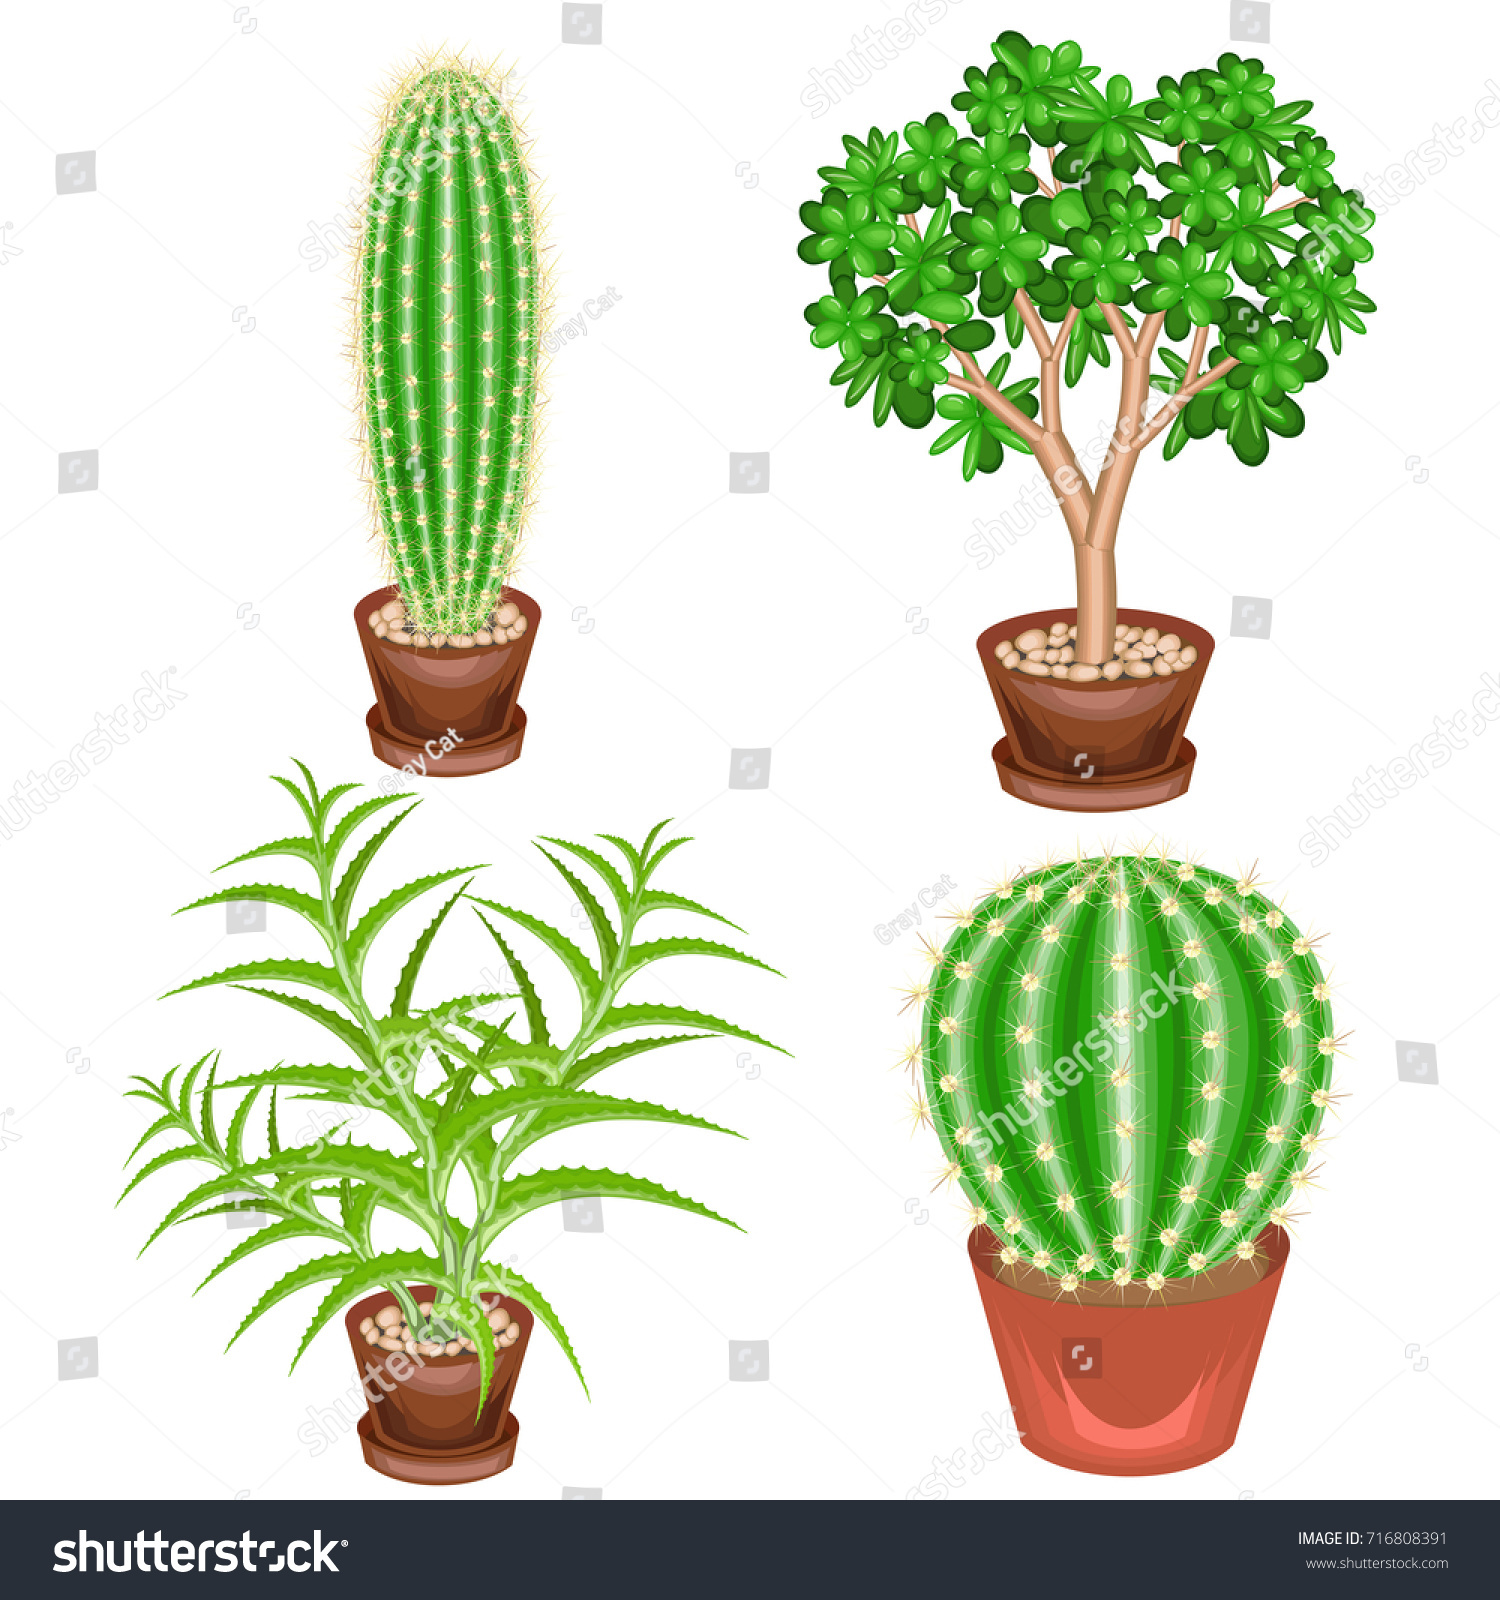 Aloe Vera Kaktus Collection Houseplants Pots Cactus Crassula Aloe Stock Vector